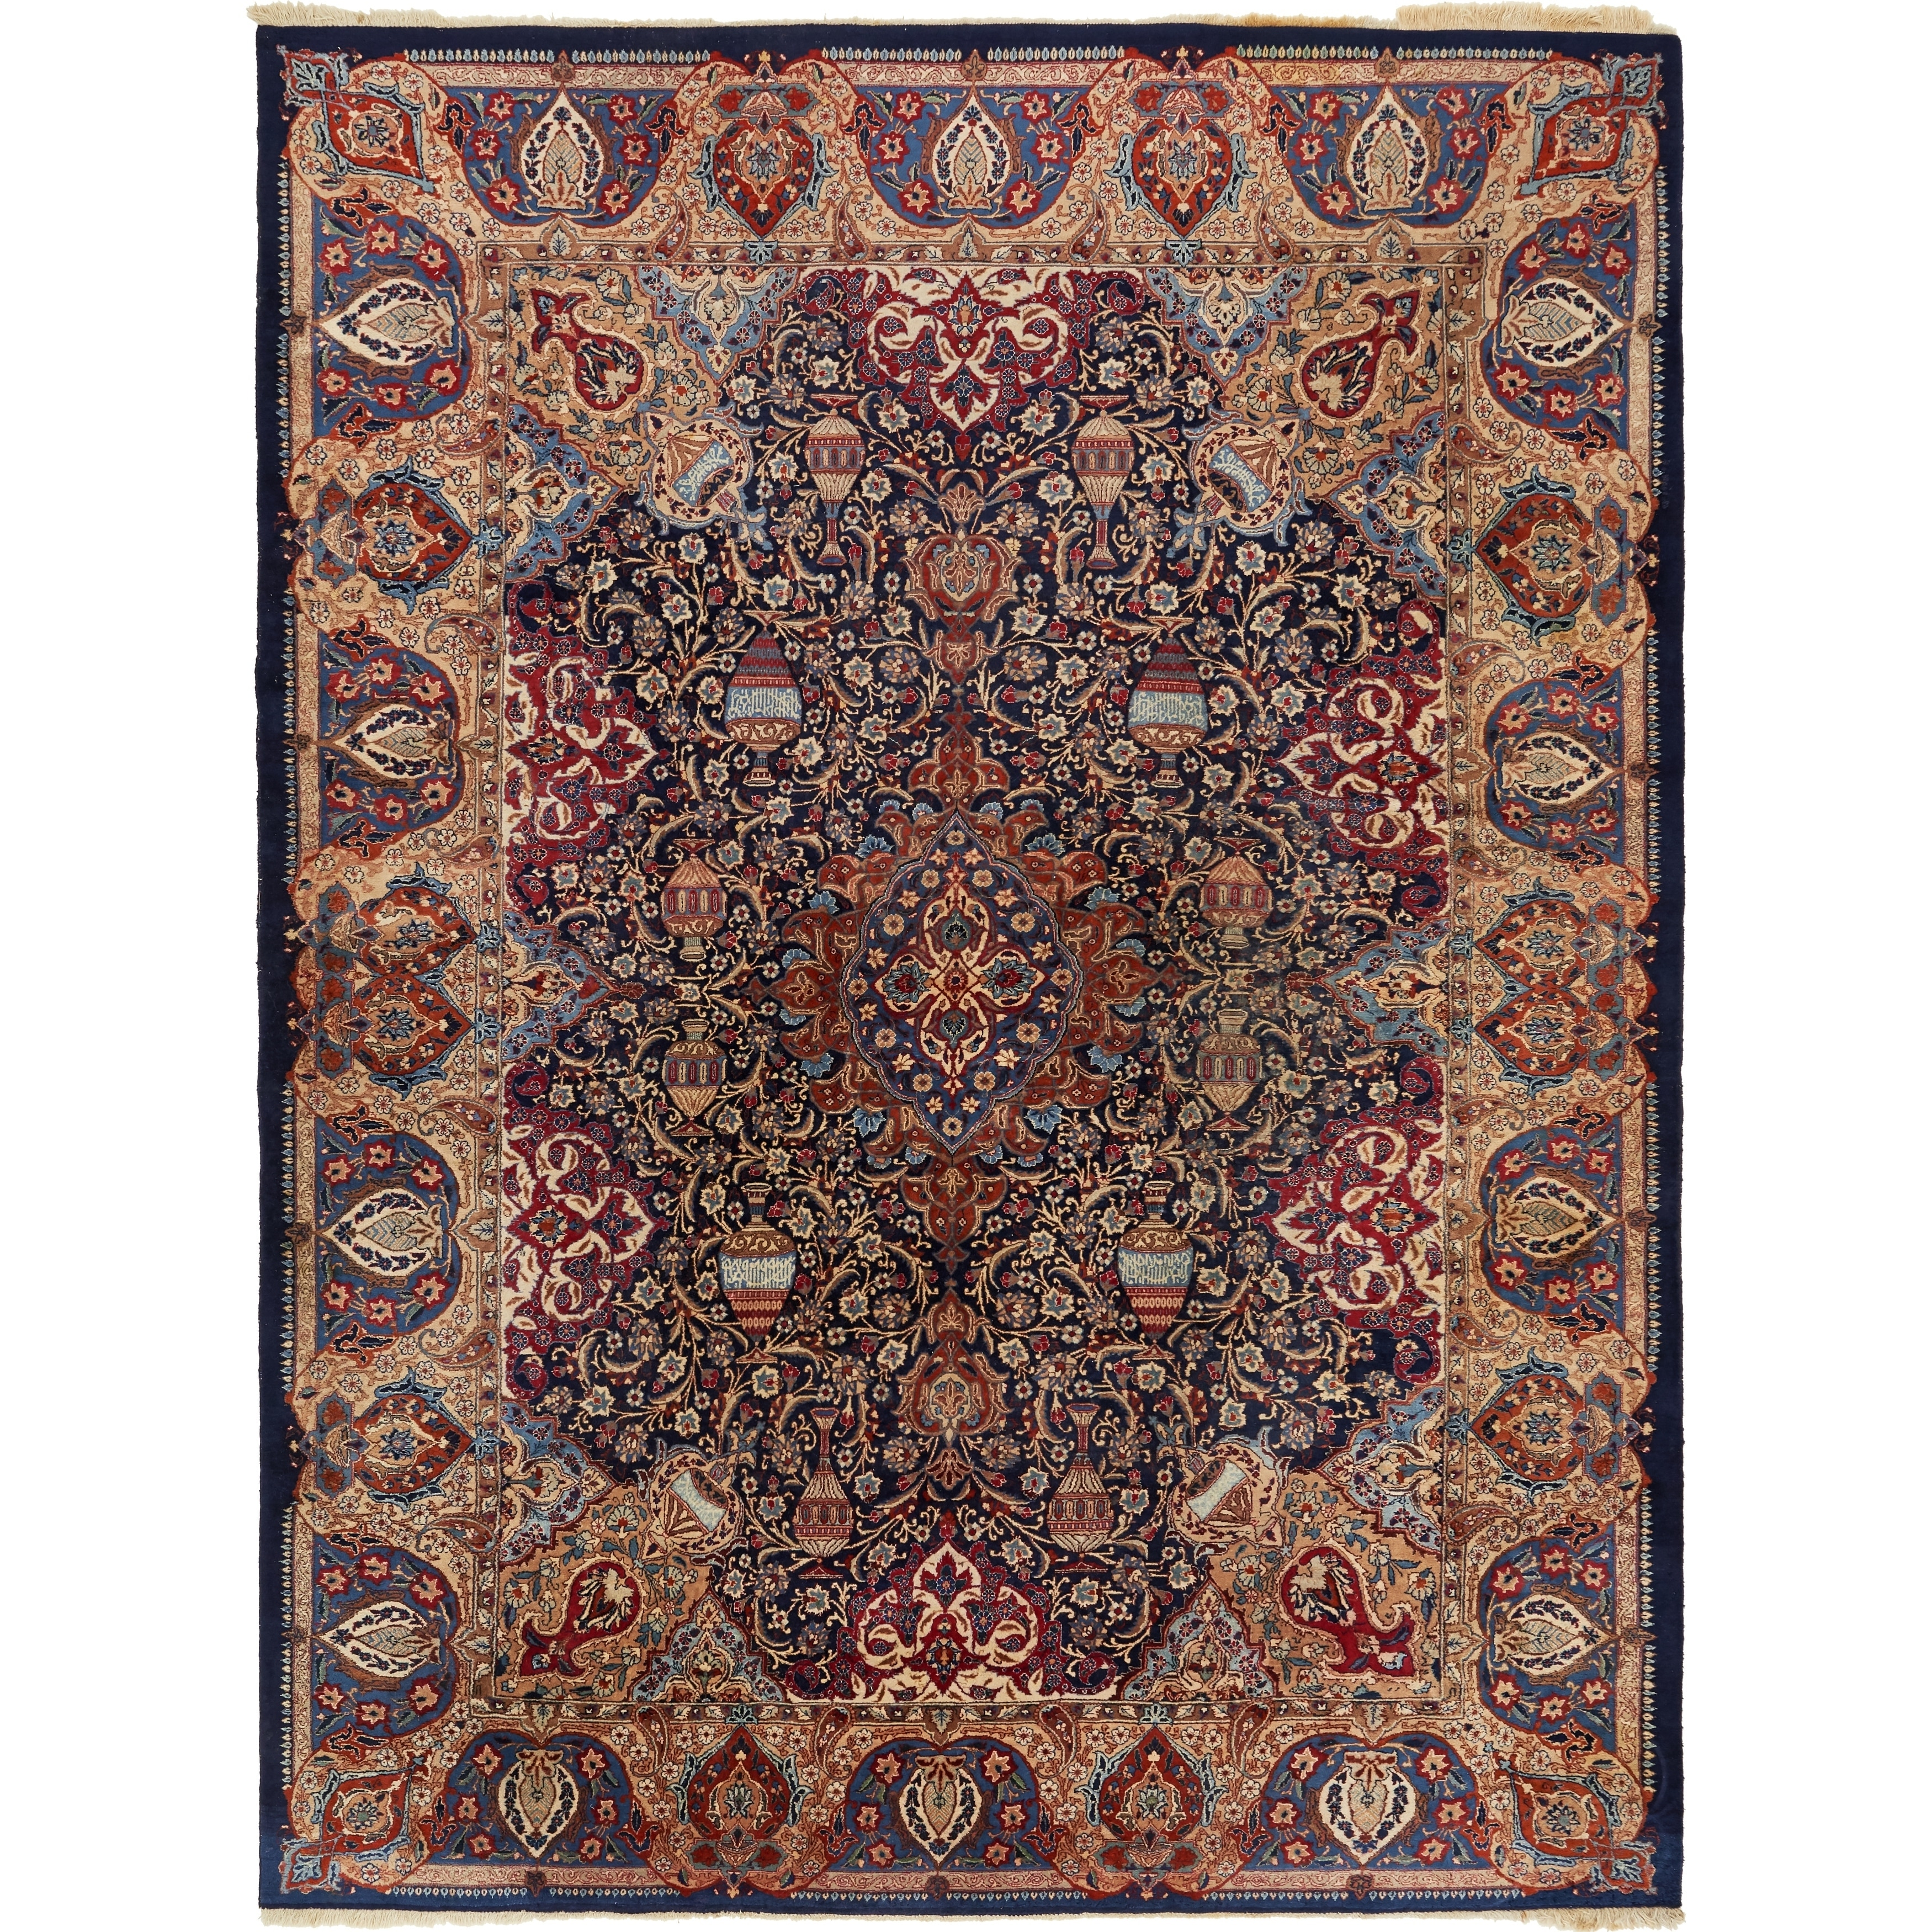 Hand Knotted Kashmar Wool Area Rug - 10 2 x 13 3 (Navy blue - 10 2 x 13 3)